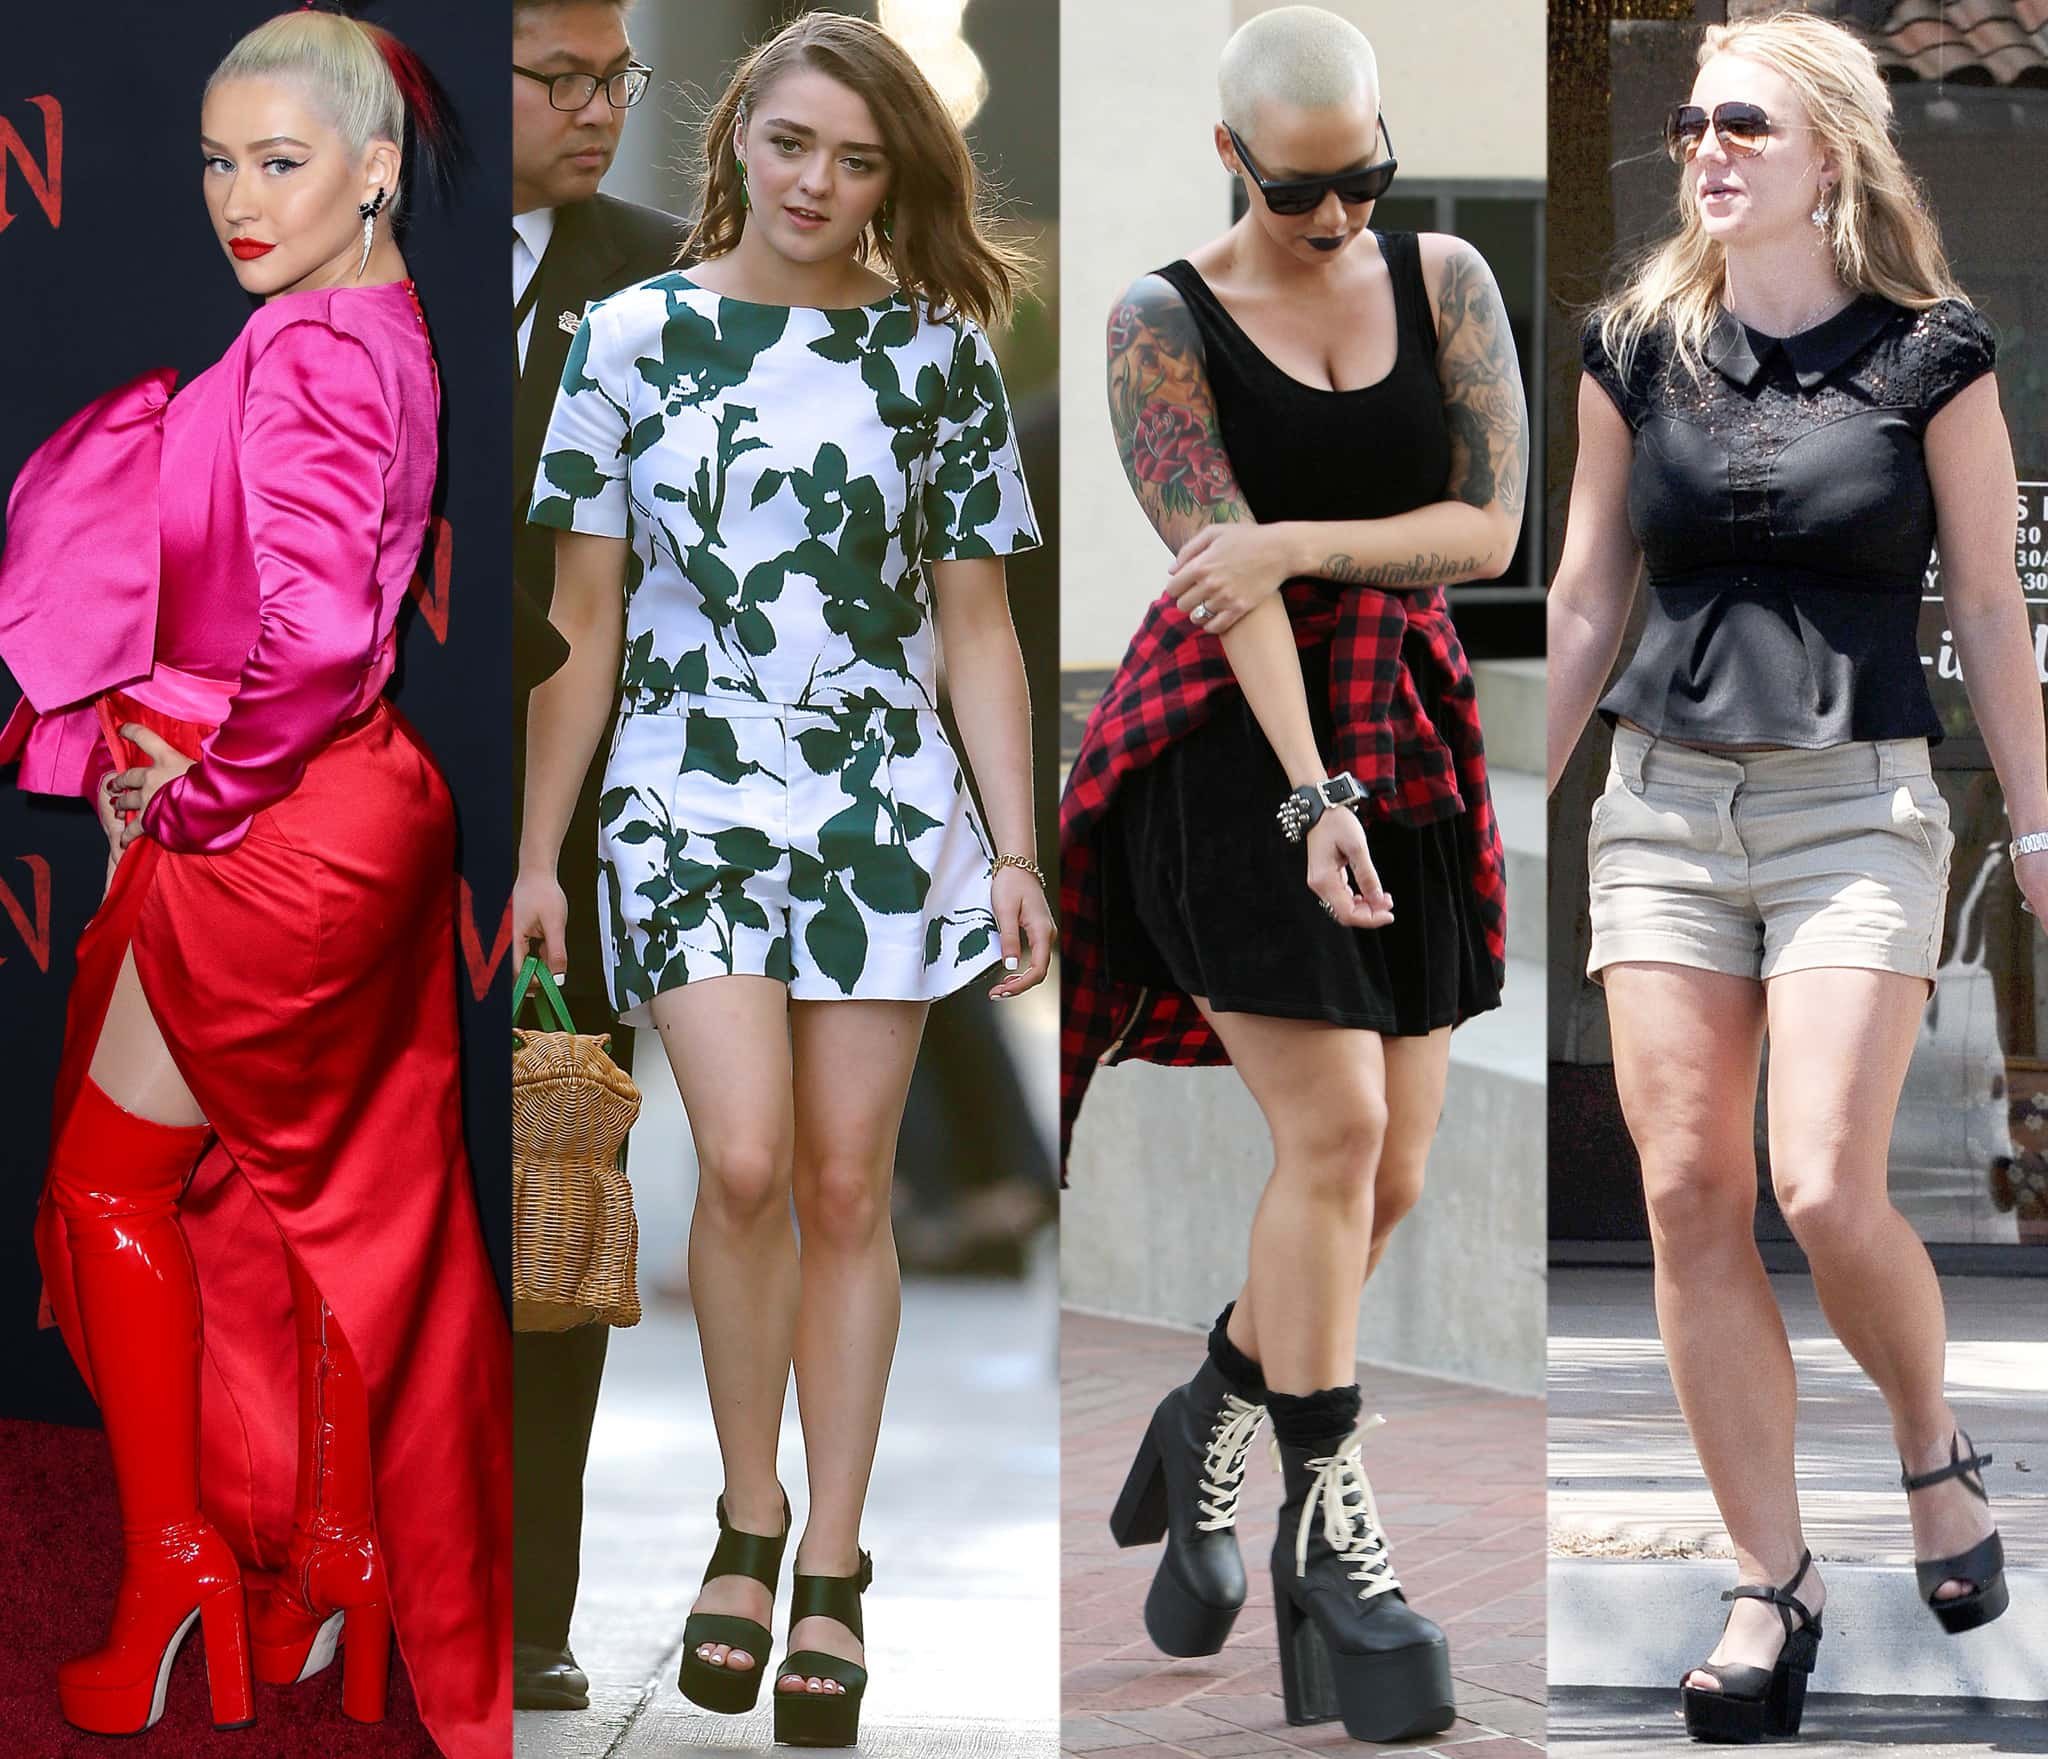 Christina Aguilera, Maisie Williams, Amber Rose, and Britney Spears wearing platform shoes